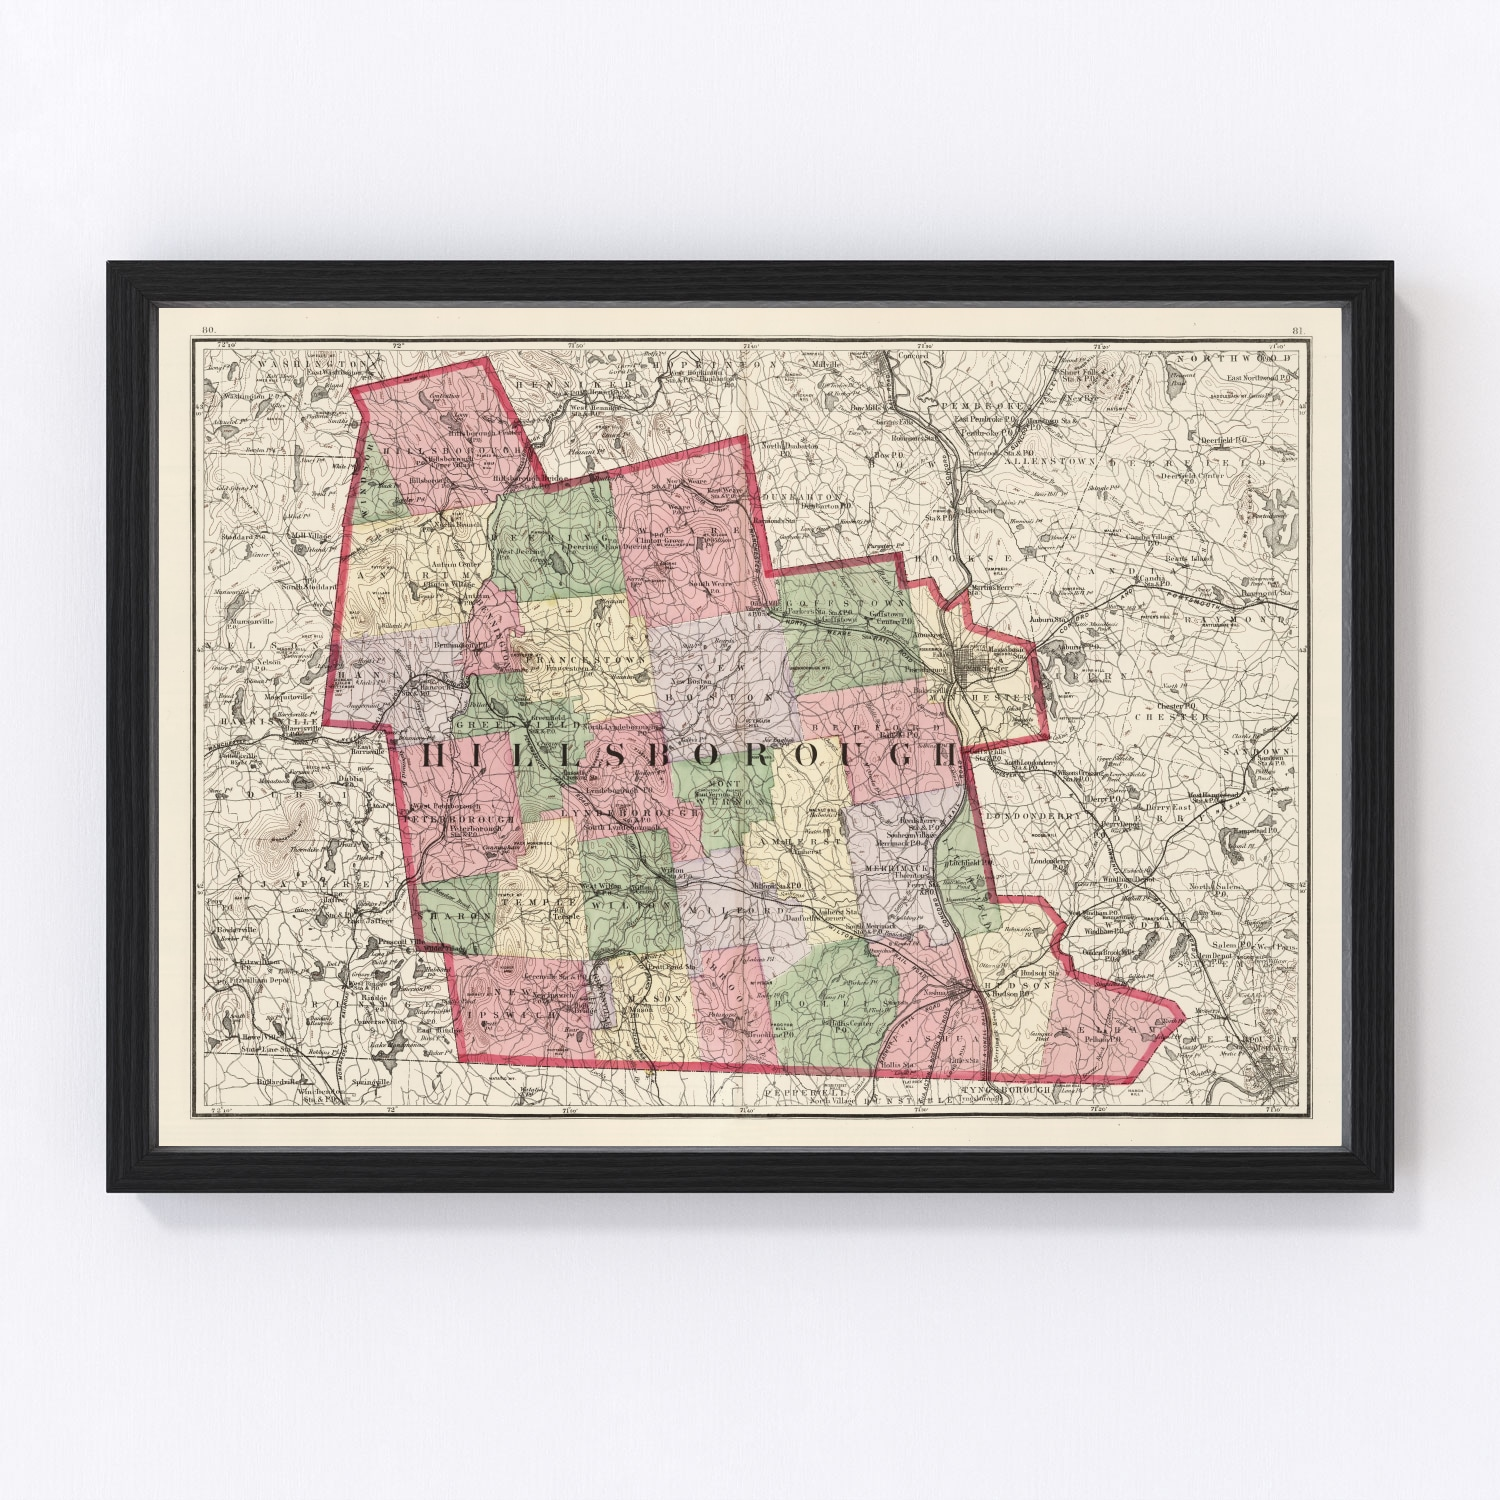 Vintage Map of Hillsborough County New Hampshire, 1877